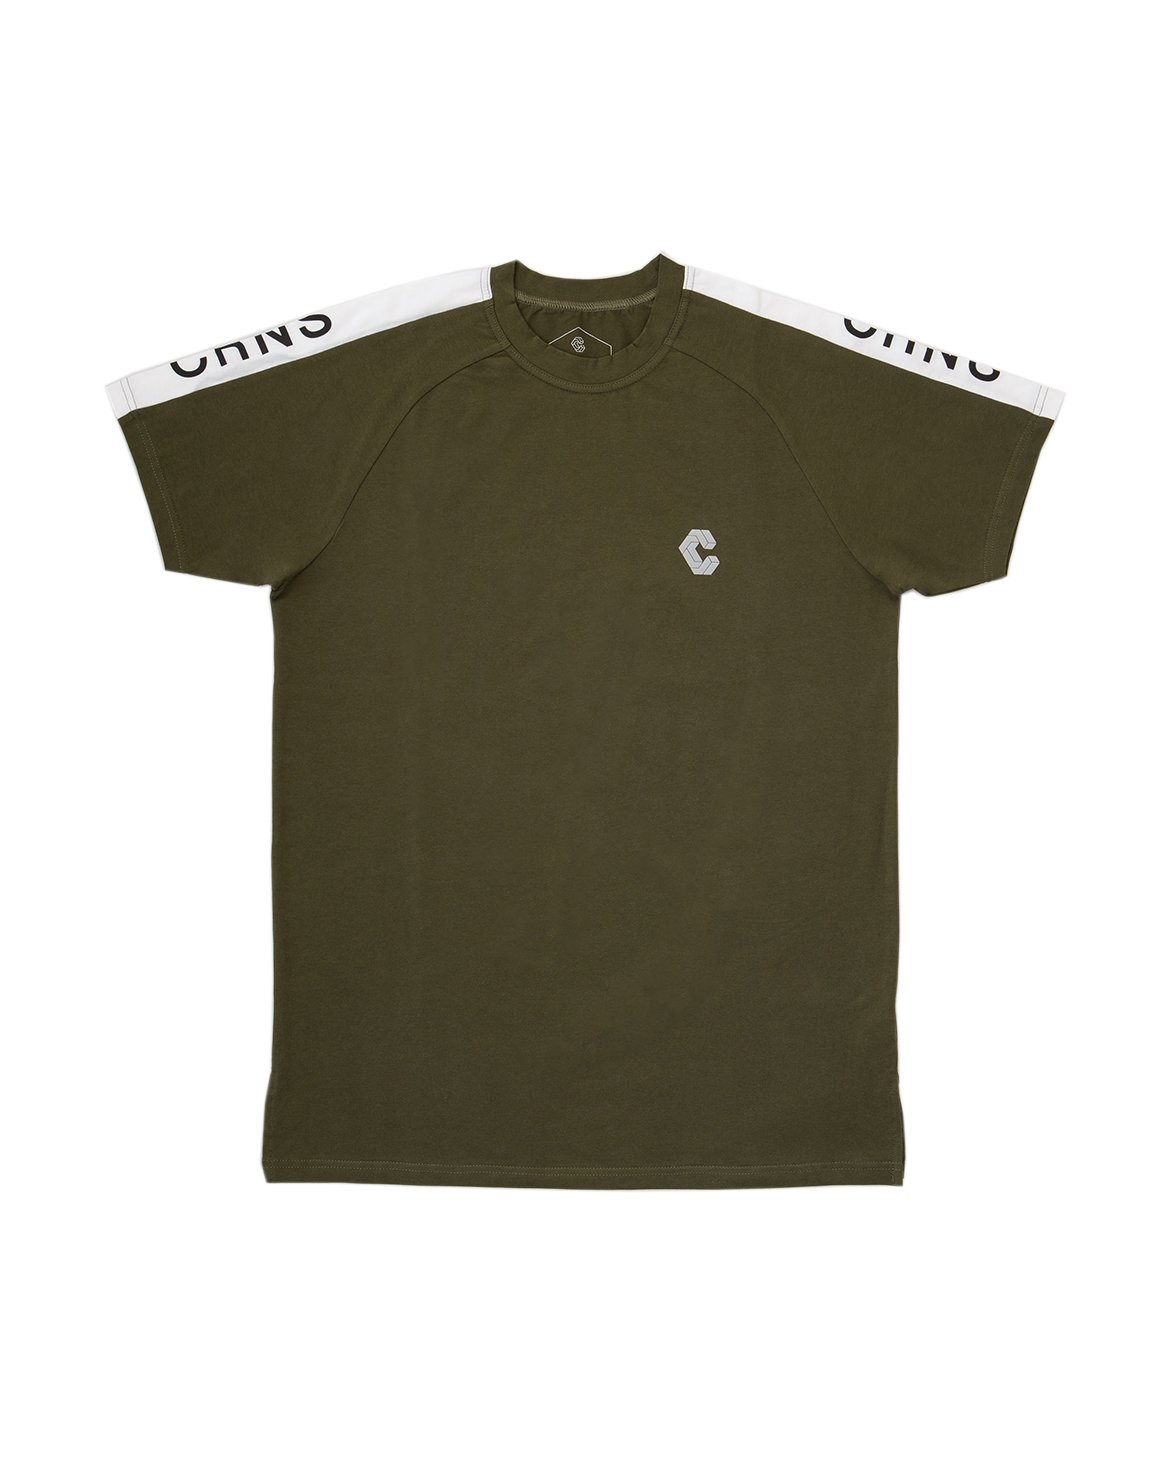 <img class='new_mark_img1' src='https://img.shop-pro.jp/img/new/icons55.gif' style='border:none;display:inline;margin:0px;padding:0px;width:auto;' />CRNS SHOULDER LOGO FIT T-SHIRTS 【OLIVE&KHAKI】